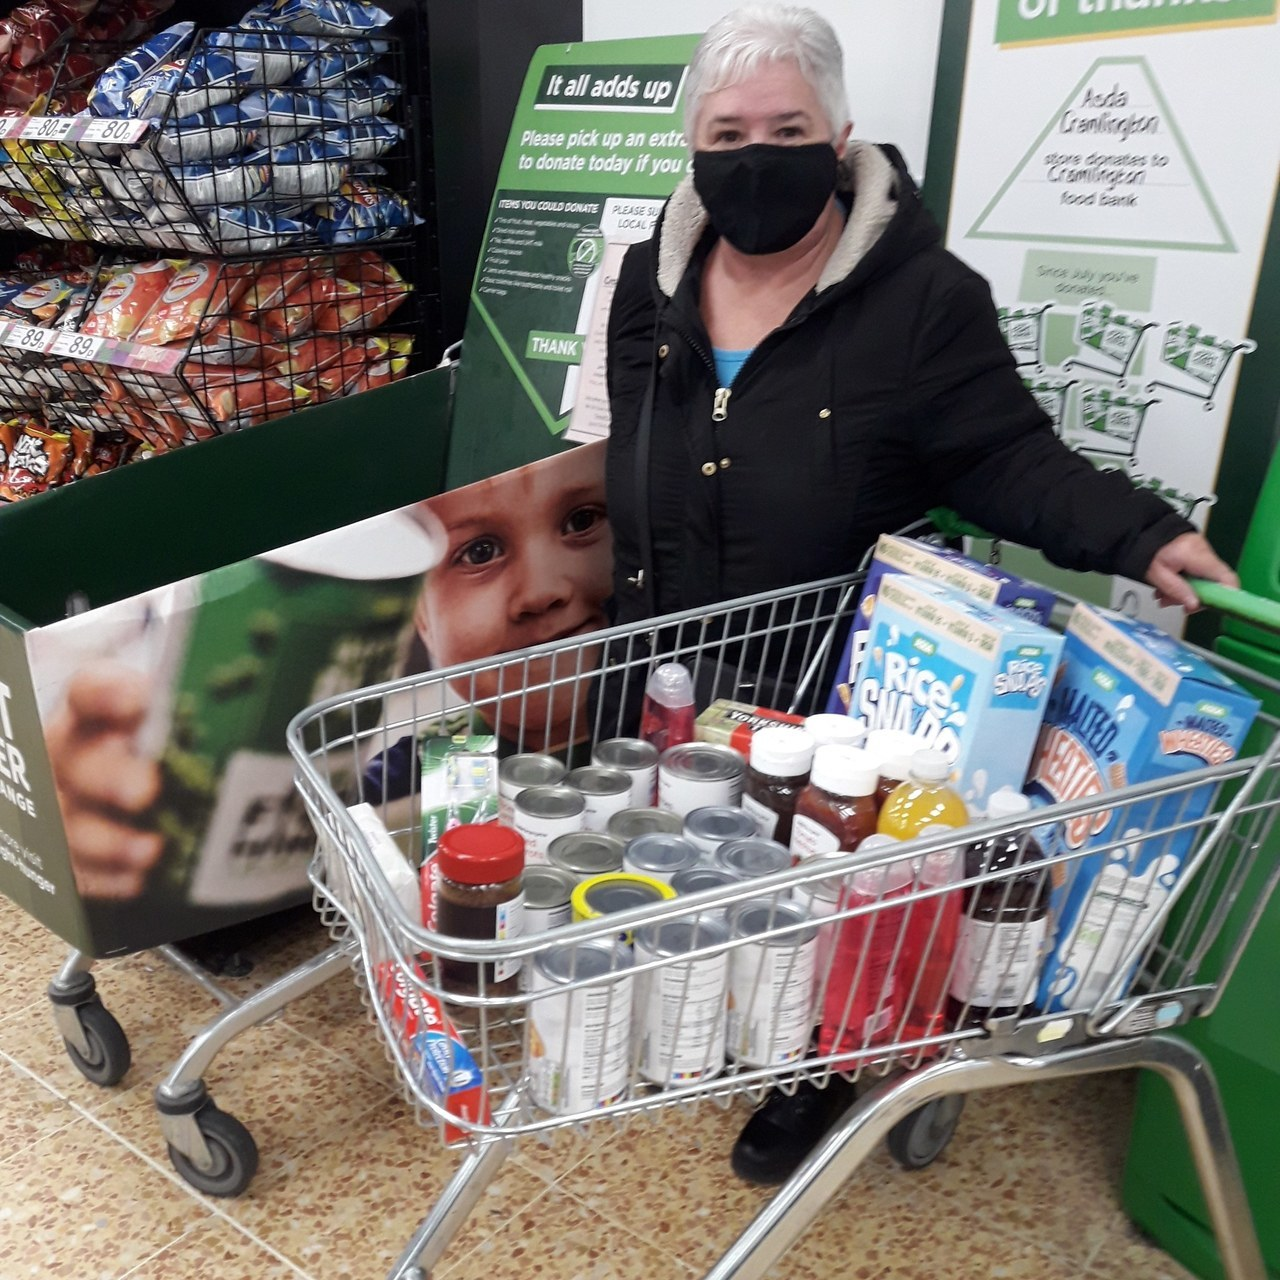 Gill spends lottery winnings on food for Cramlington Foodbank | Asda Cramlington